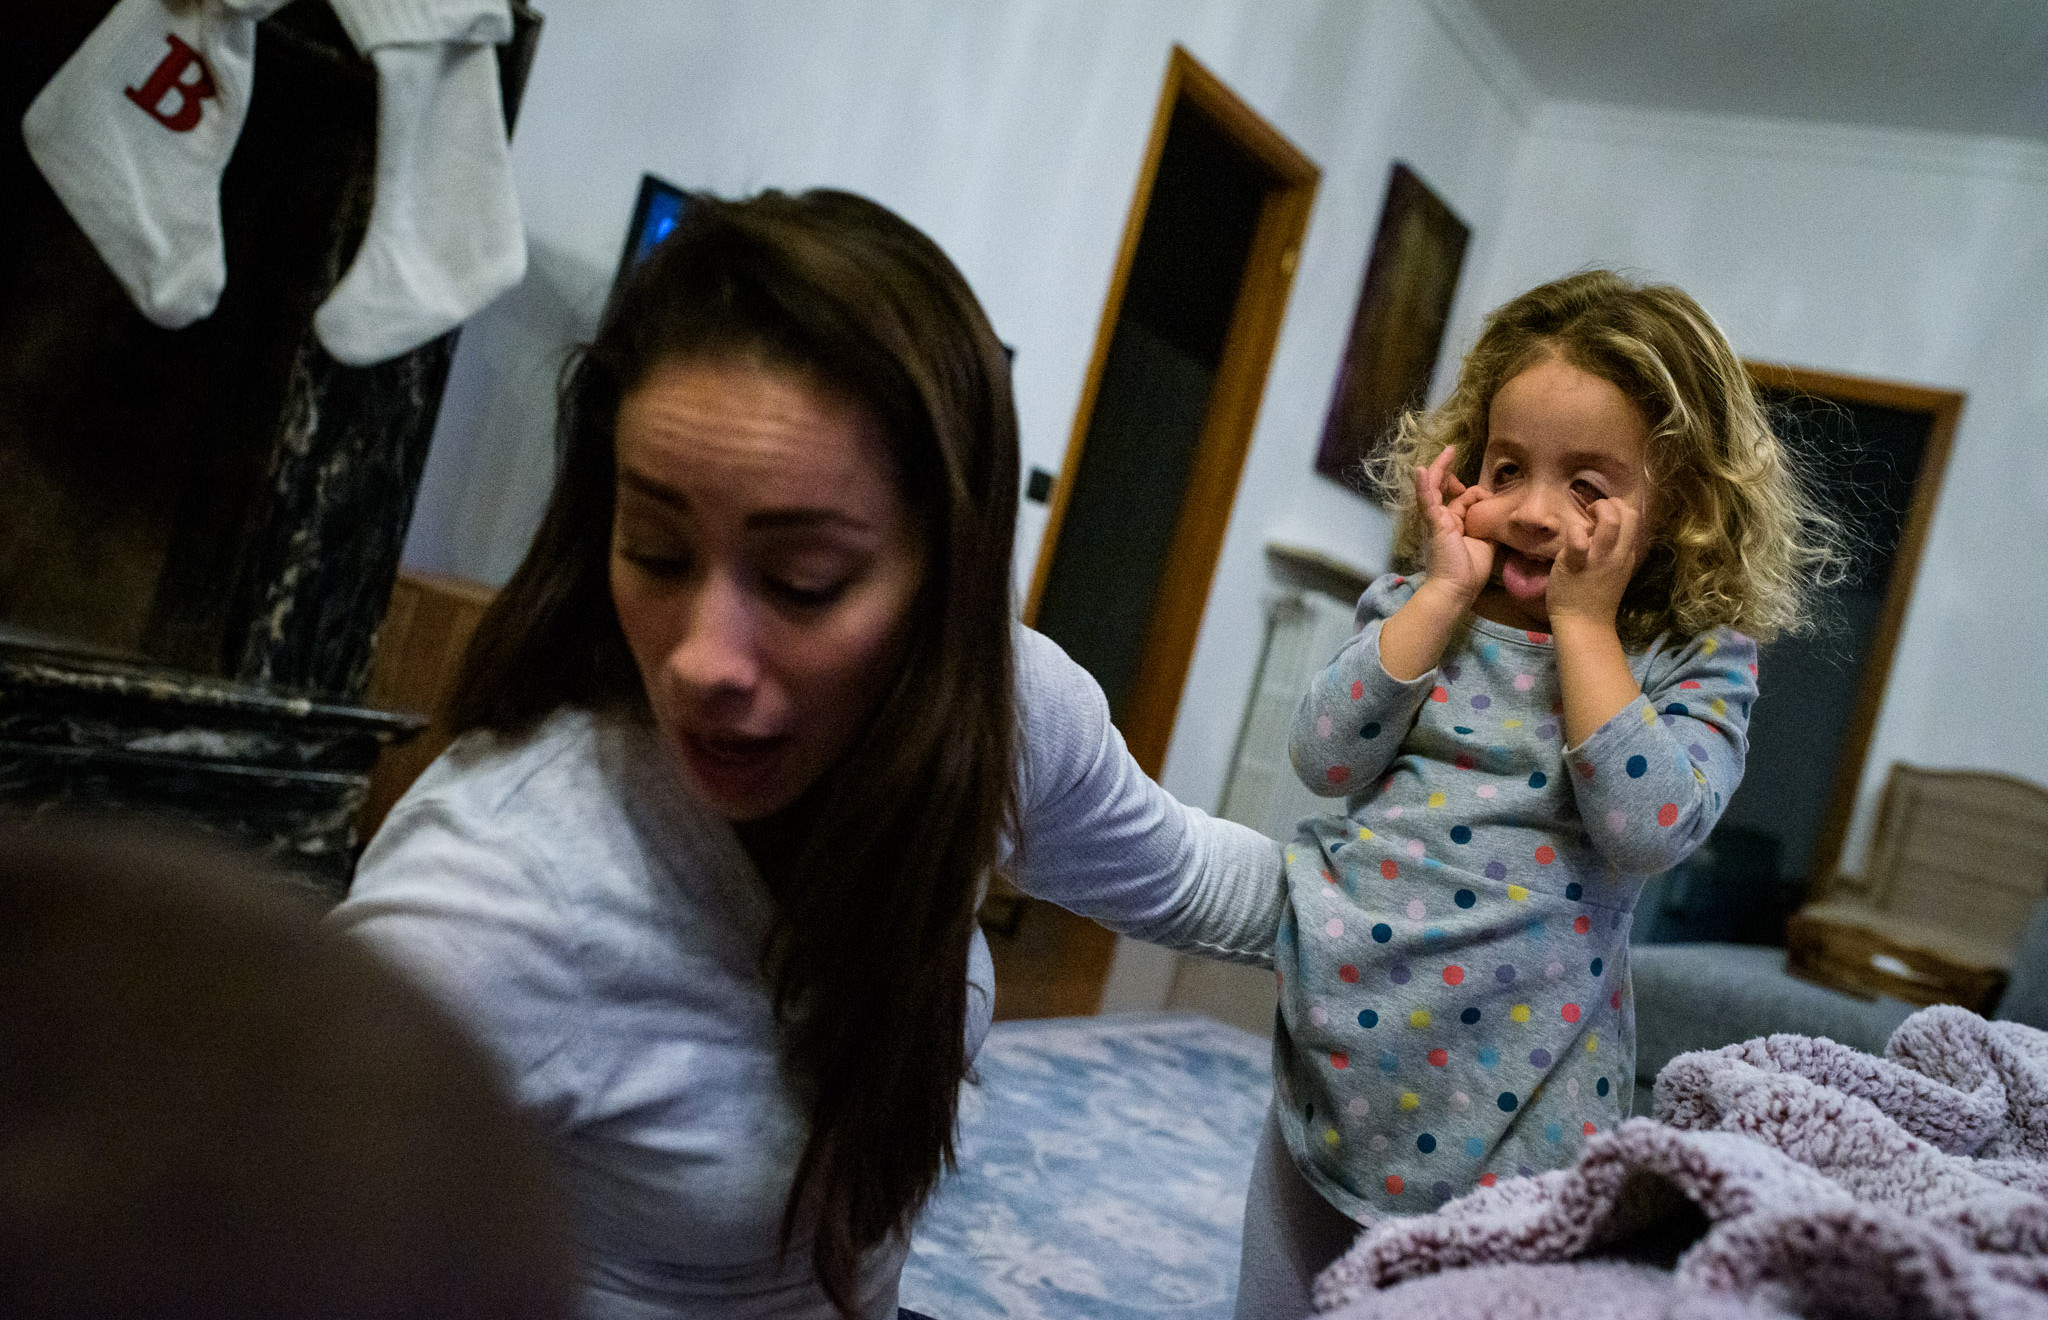 girl makes silly face at mom who's distracted with son